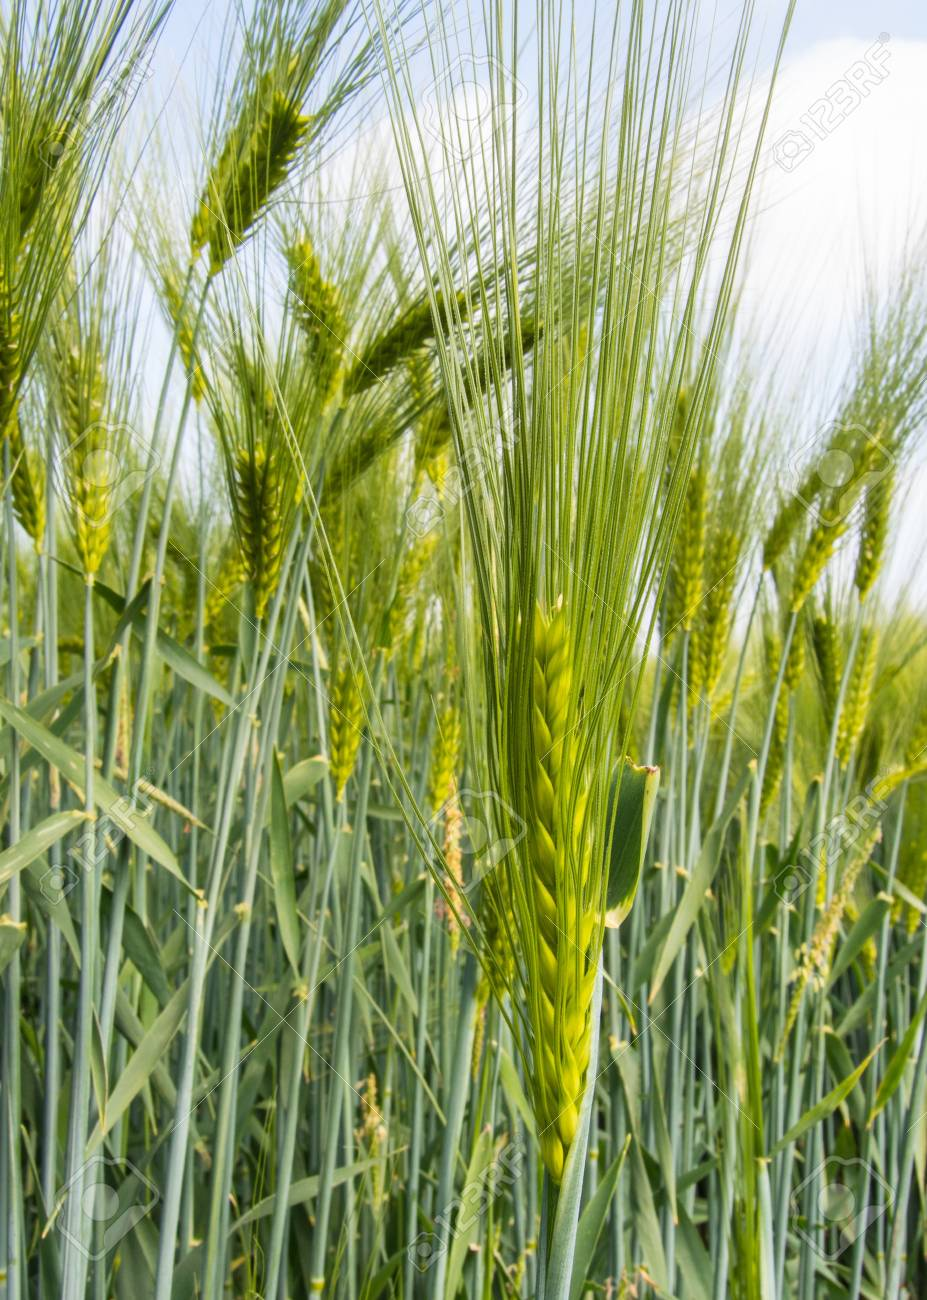 Barley Ear With Awns On A Field Stock Photo